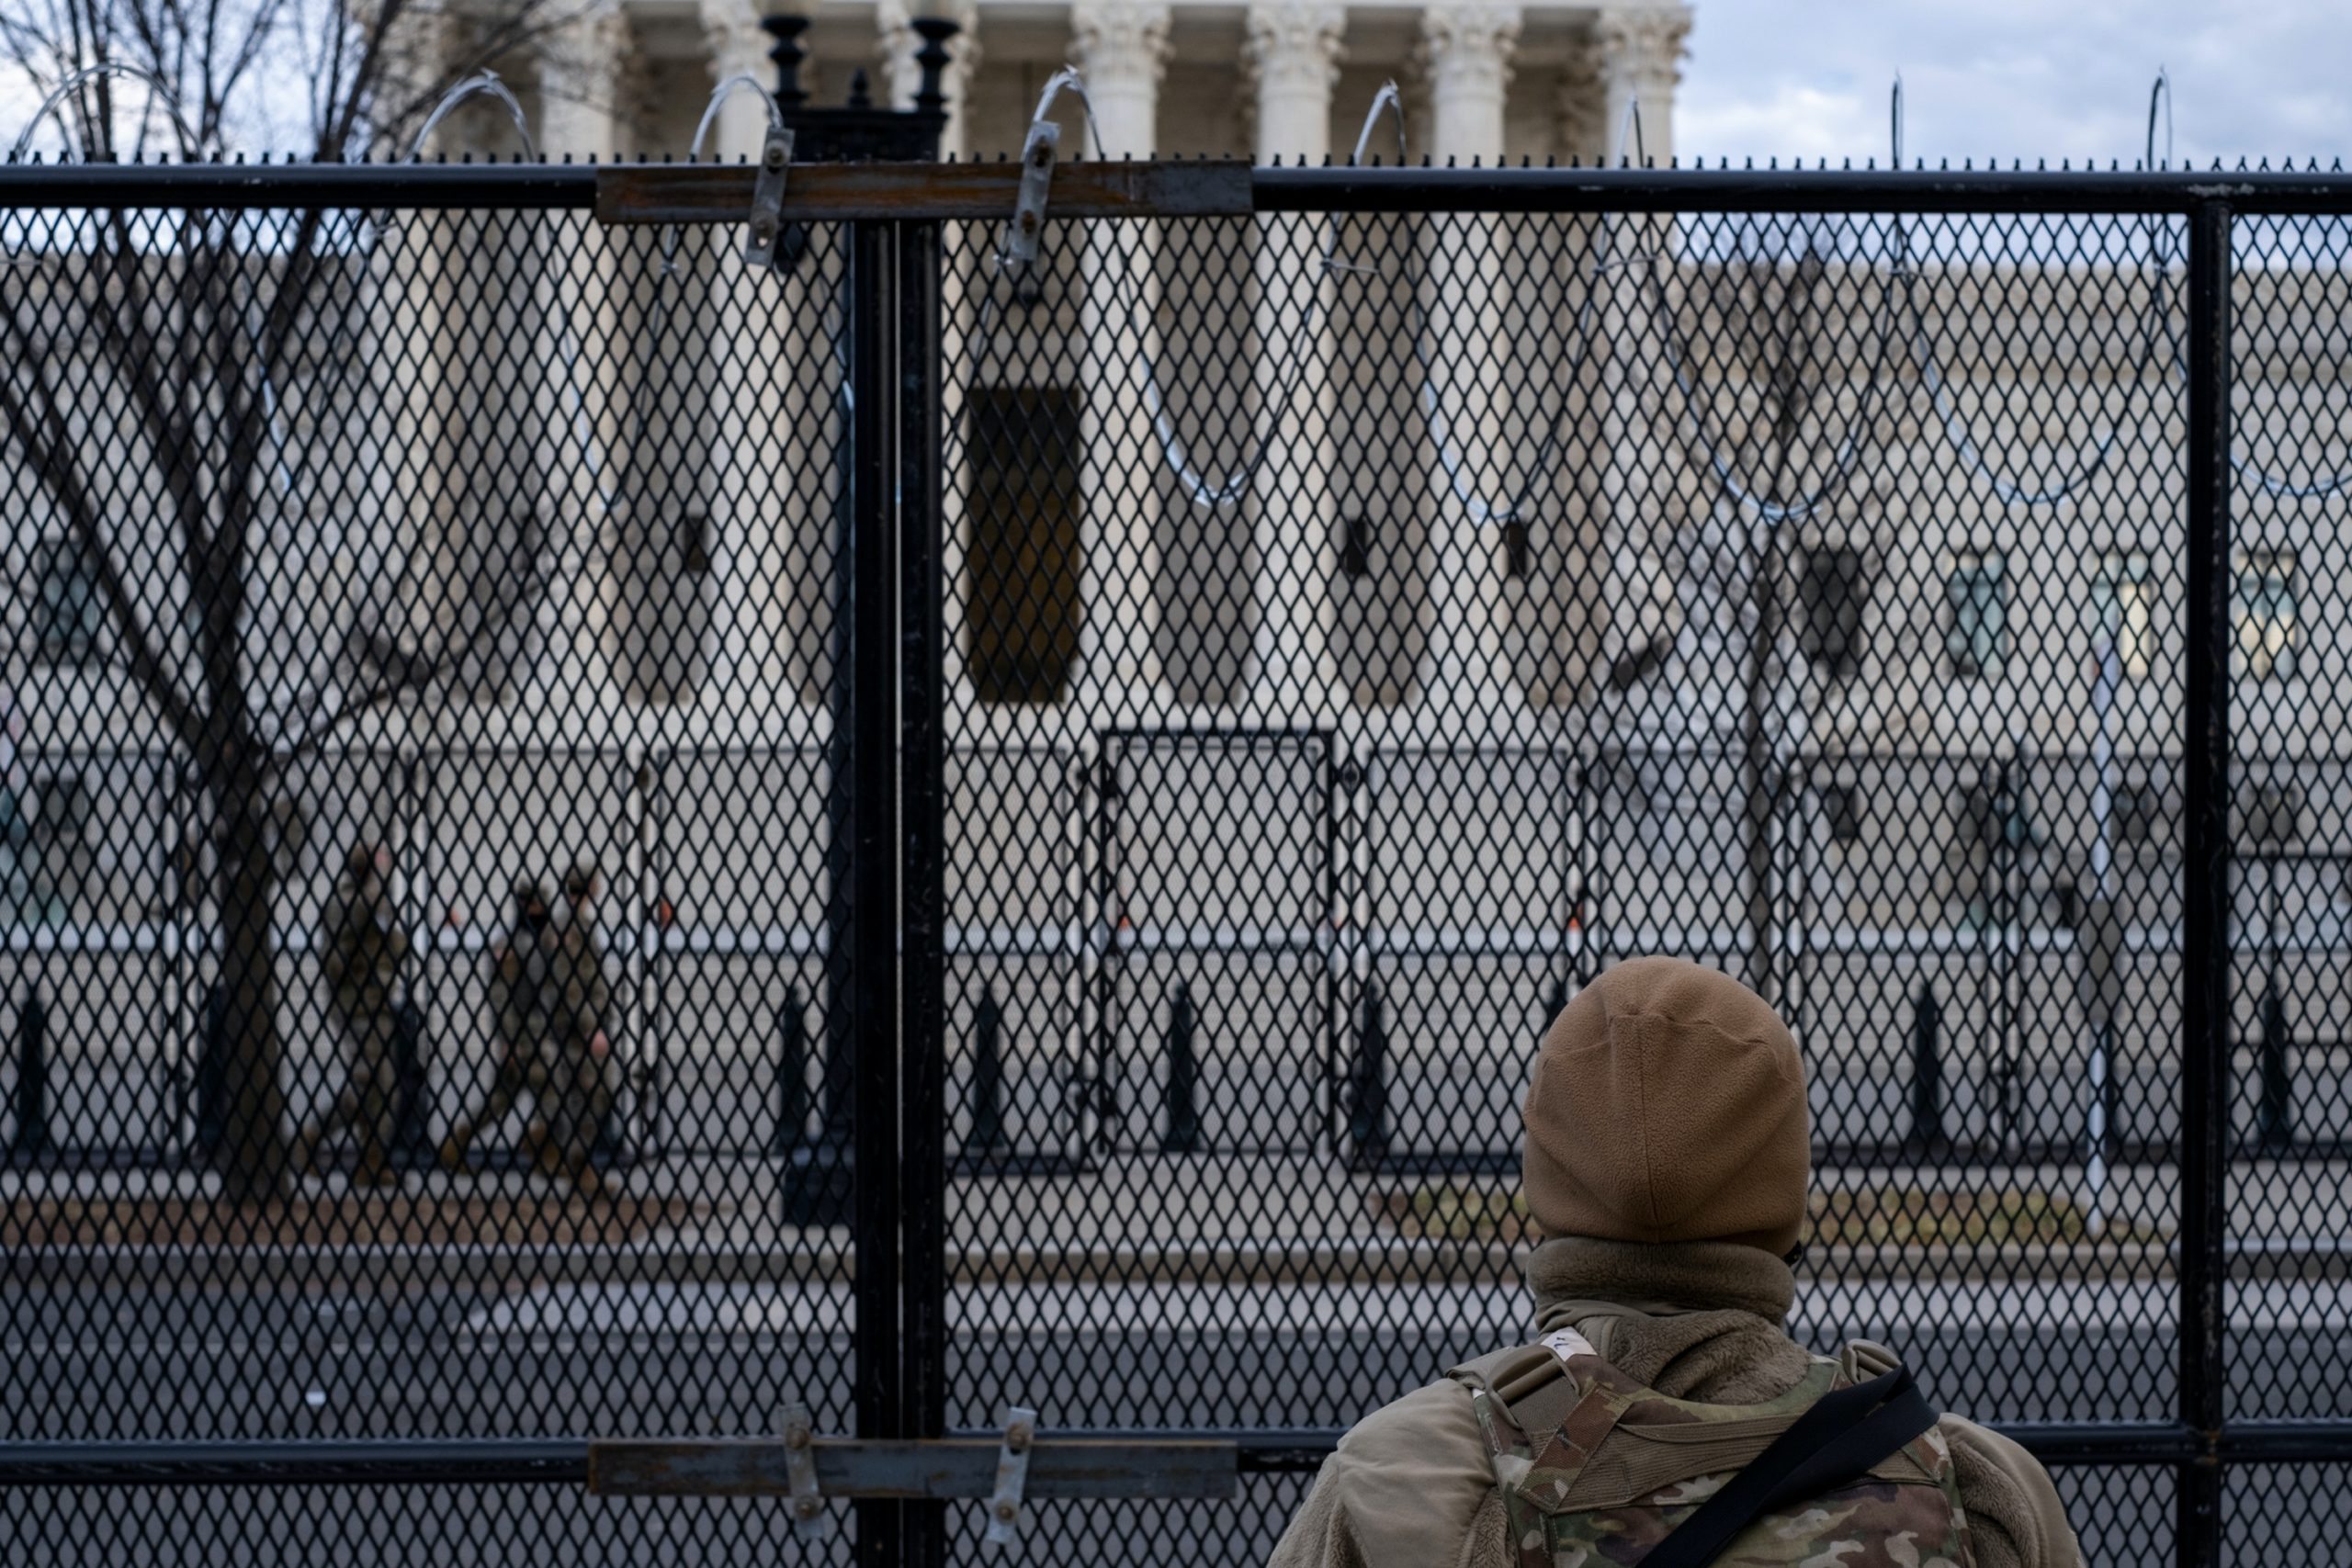 Security measures in place around the capitol building in Washington DC in preparation for the inauguration of President Joe Biden.